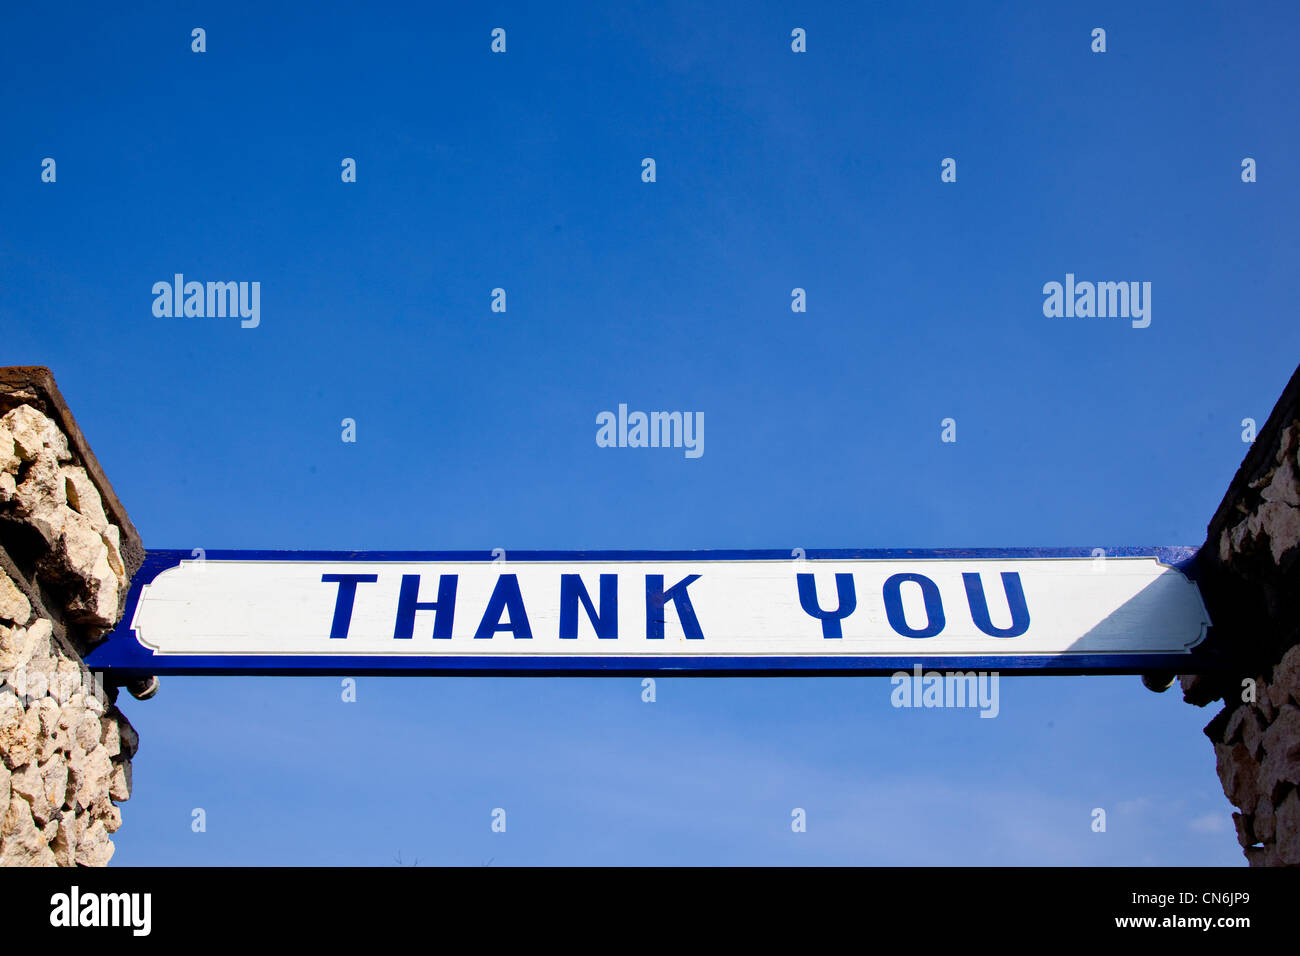 Thank you sign at temple. Bali Indonesia. - Stock Image